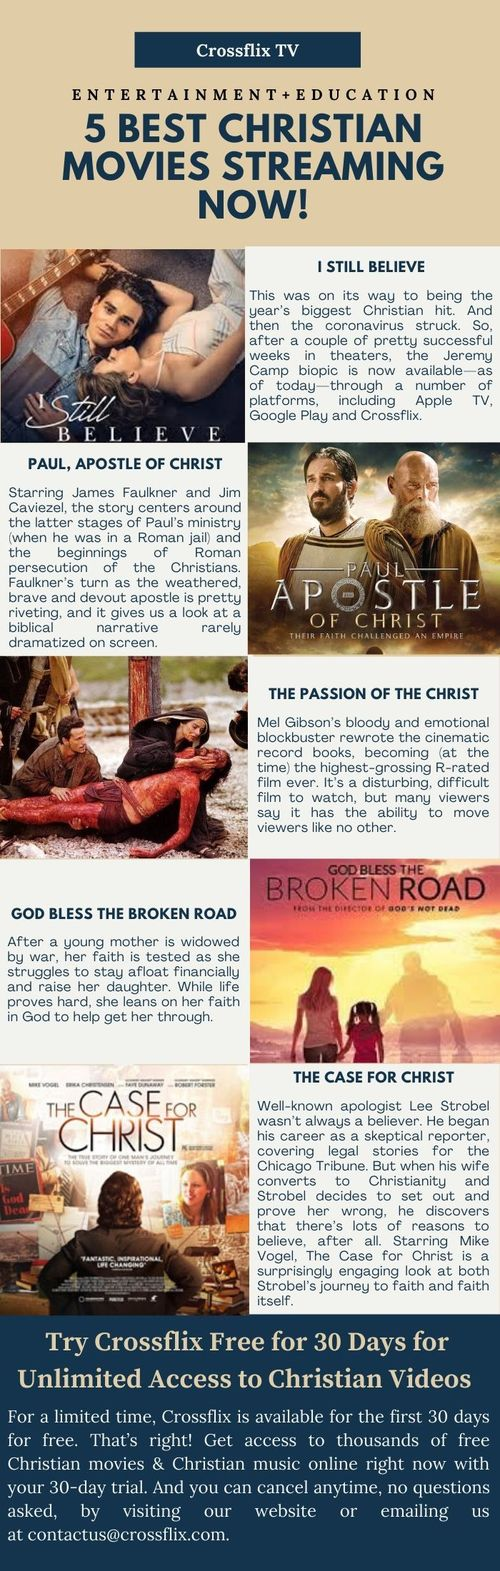 Pin on Christian Movies